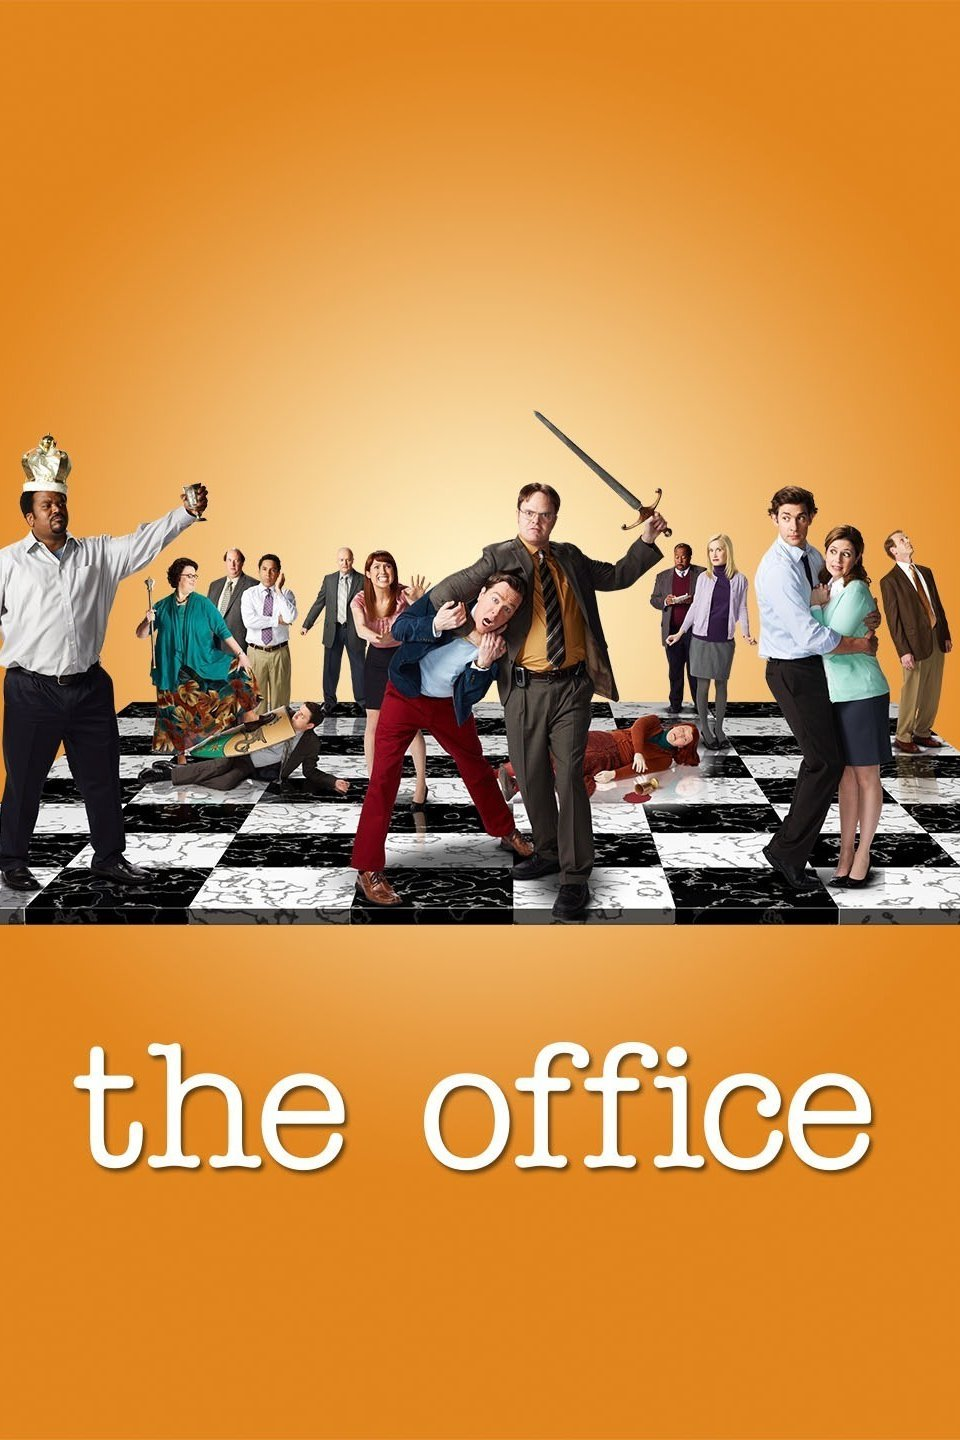 The Office Season 3 Download Complete 720p WEB-DL